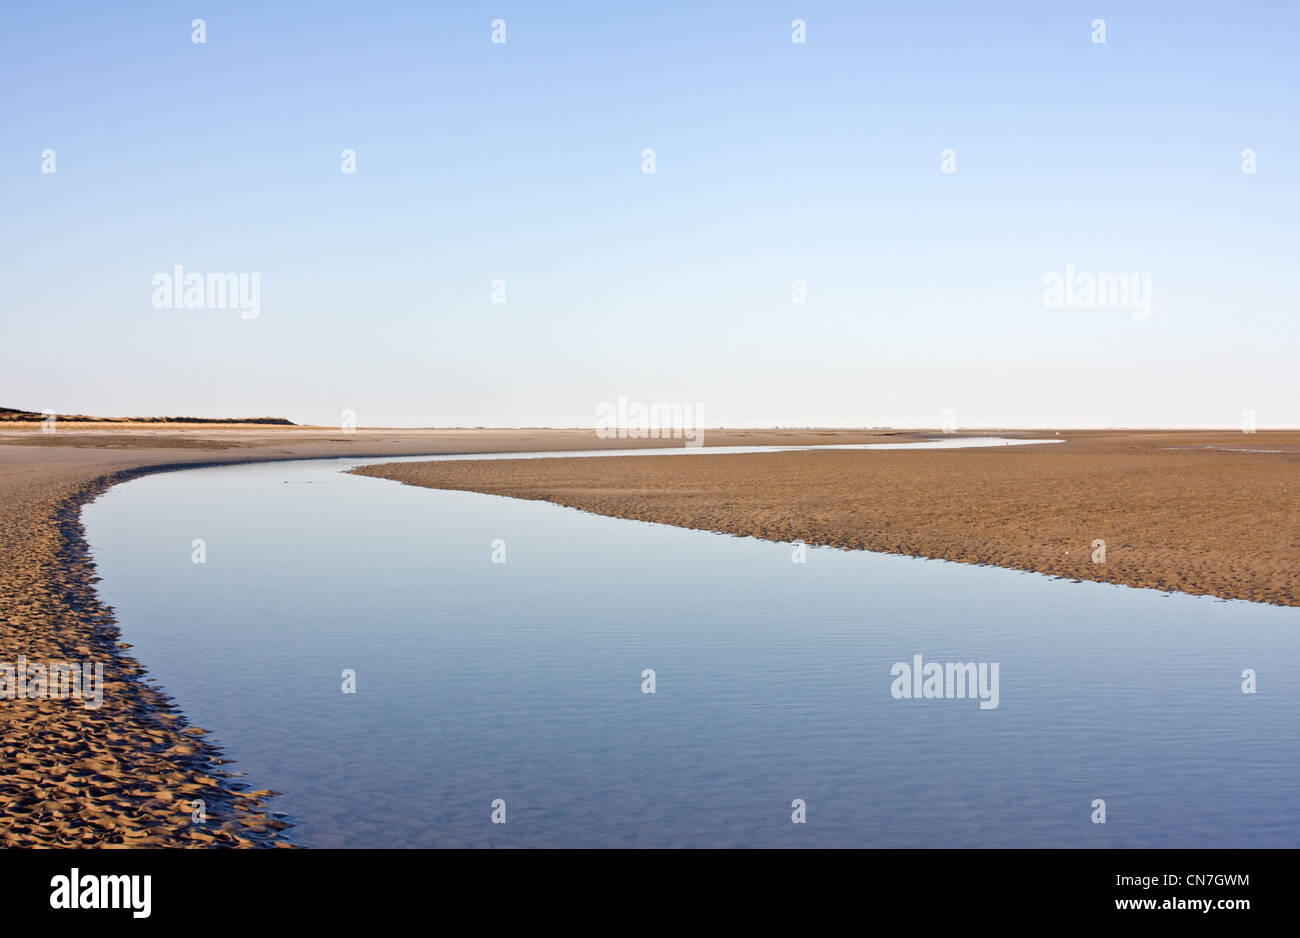 A creek on a deserted beach at ebb tide. - Stock Image